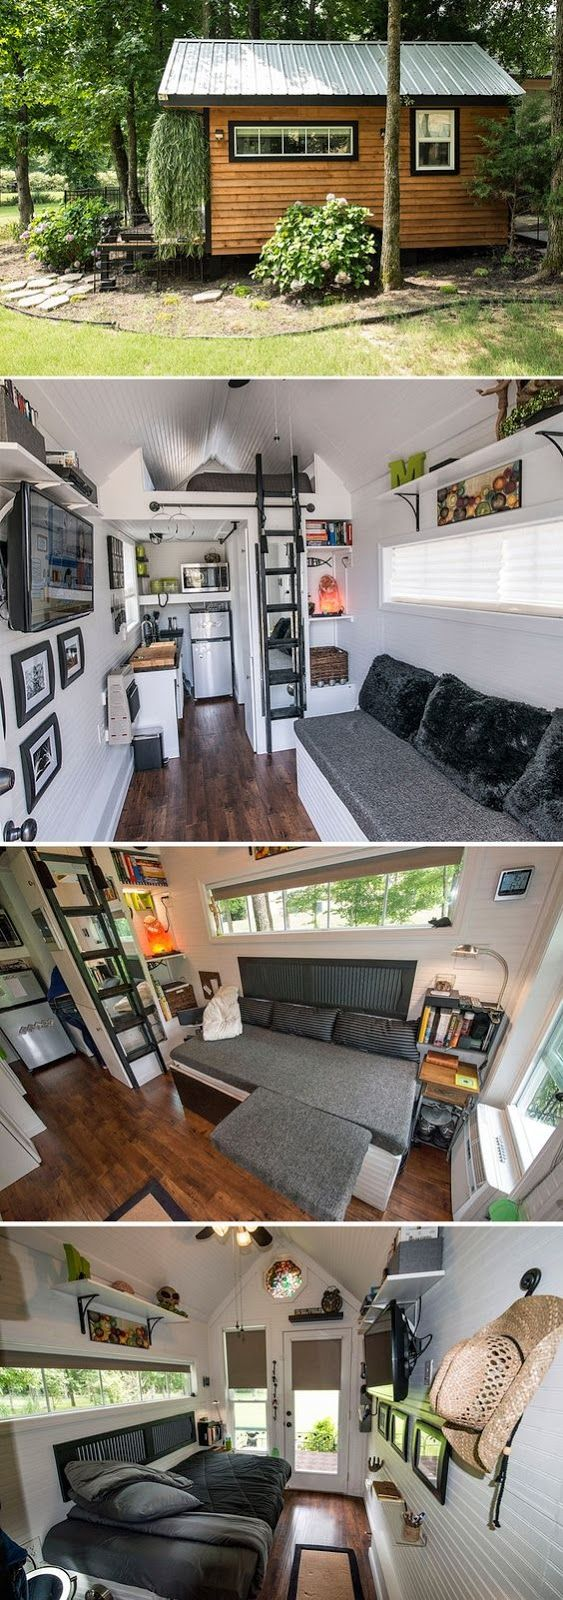 A 8′ x 16′ tiny house on wheels has a futon/couch, white painted interior, heated floors, granite counter tops, propane stove, and larger ...